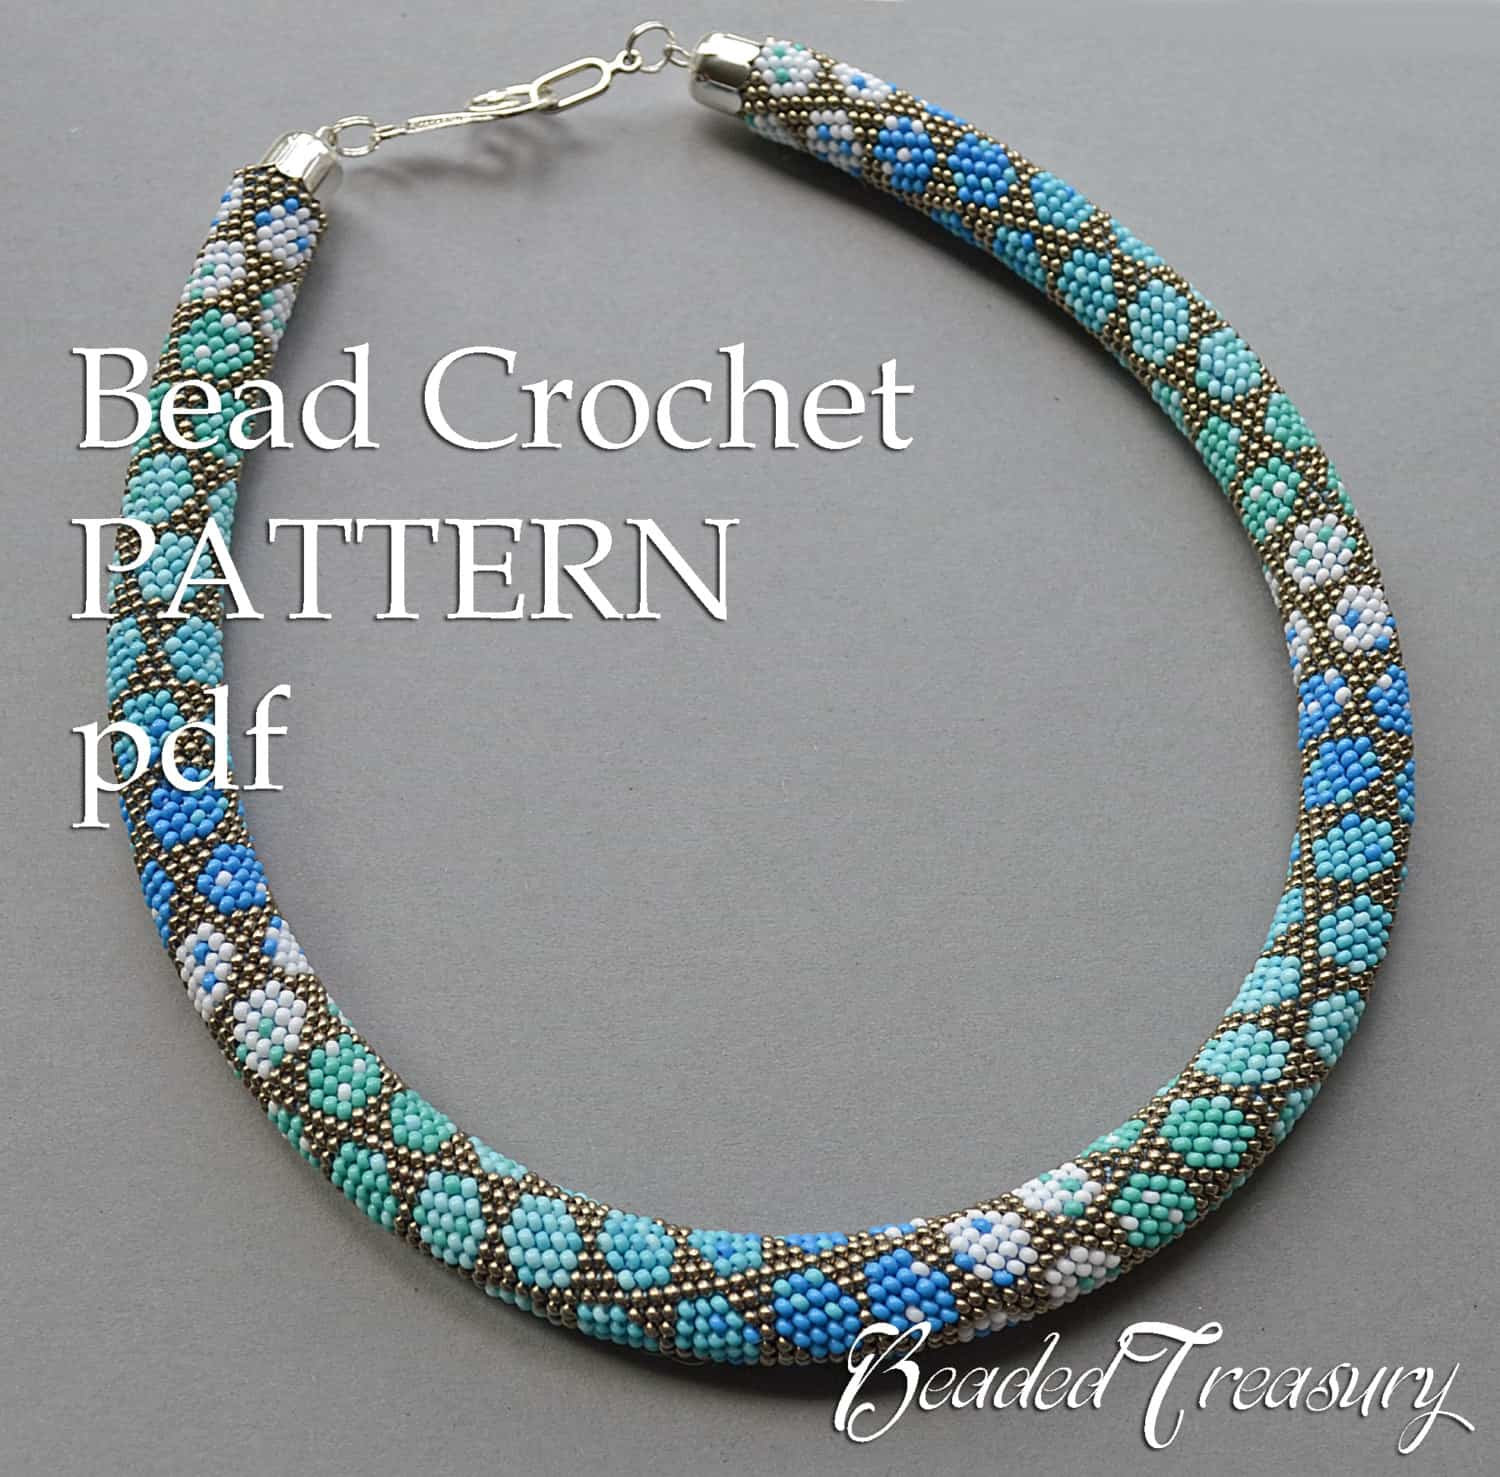 Polka dot beaded crochet necklace